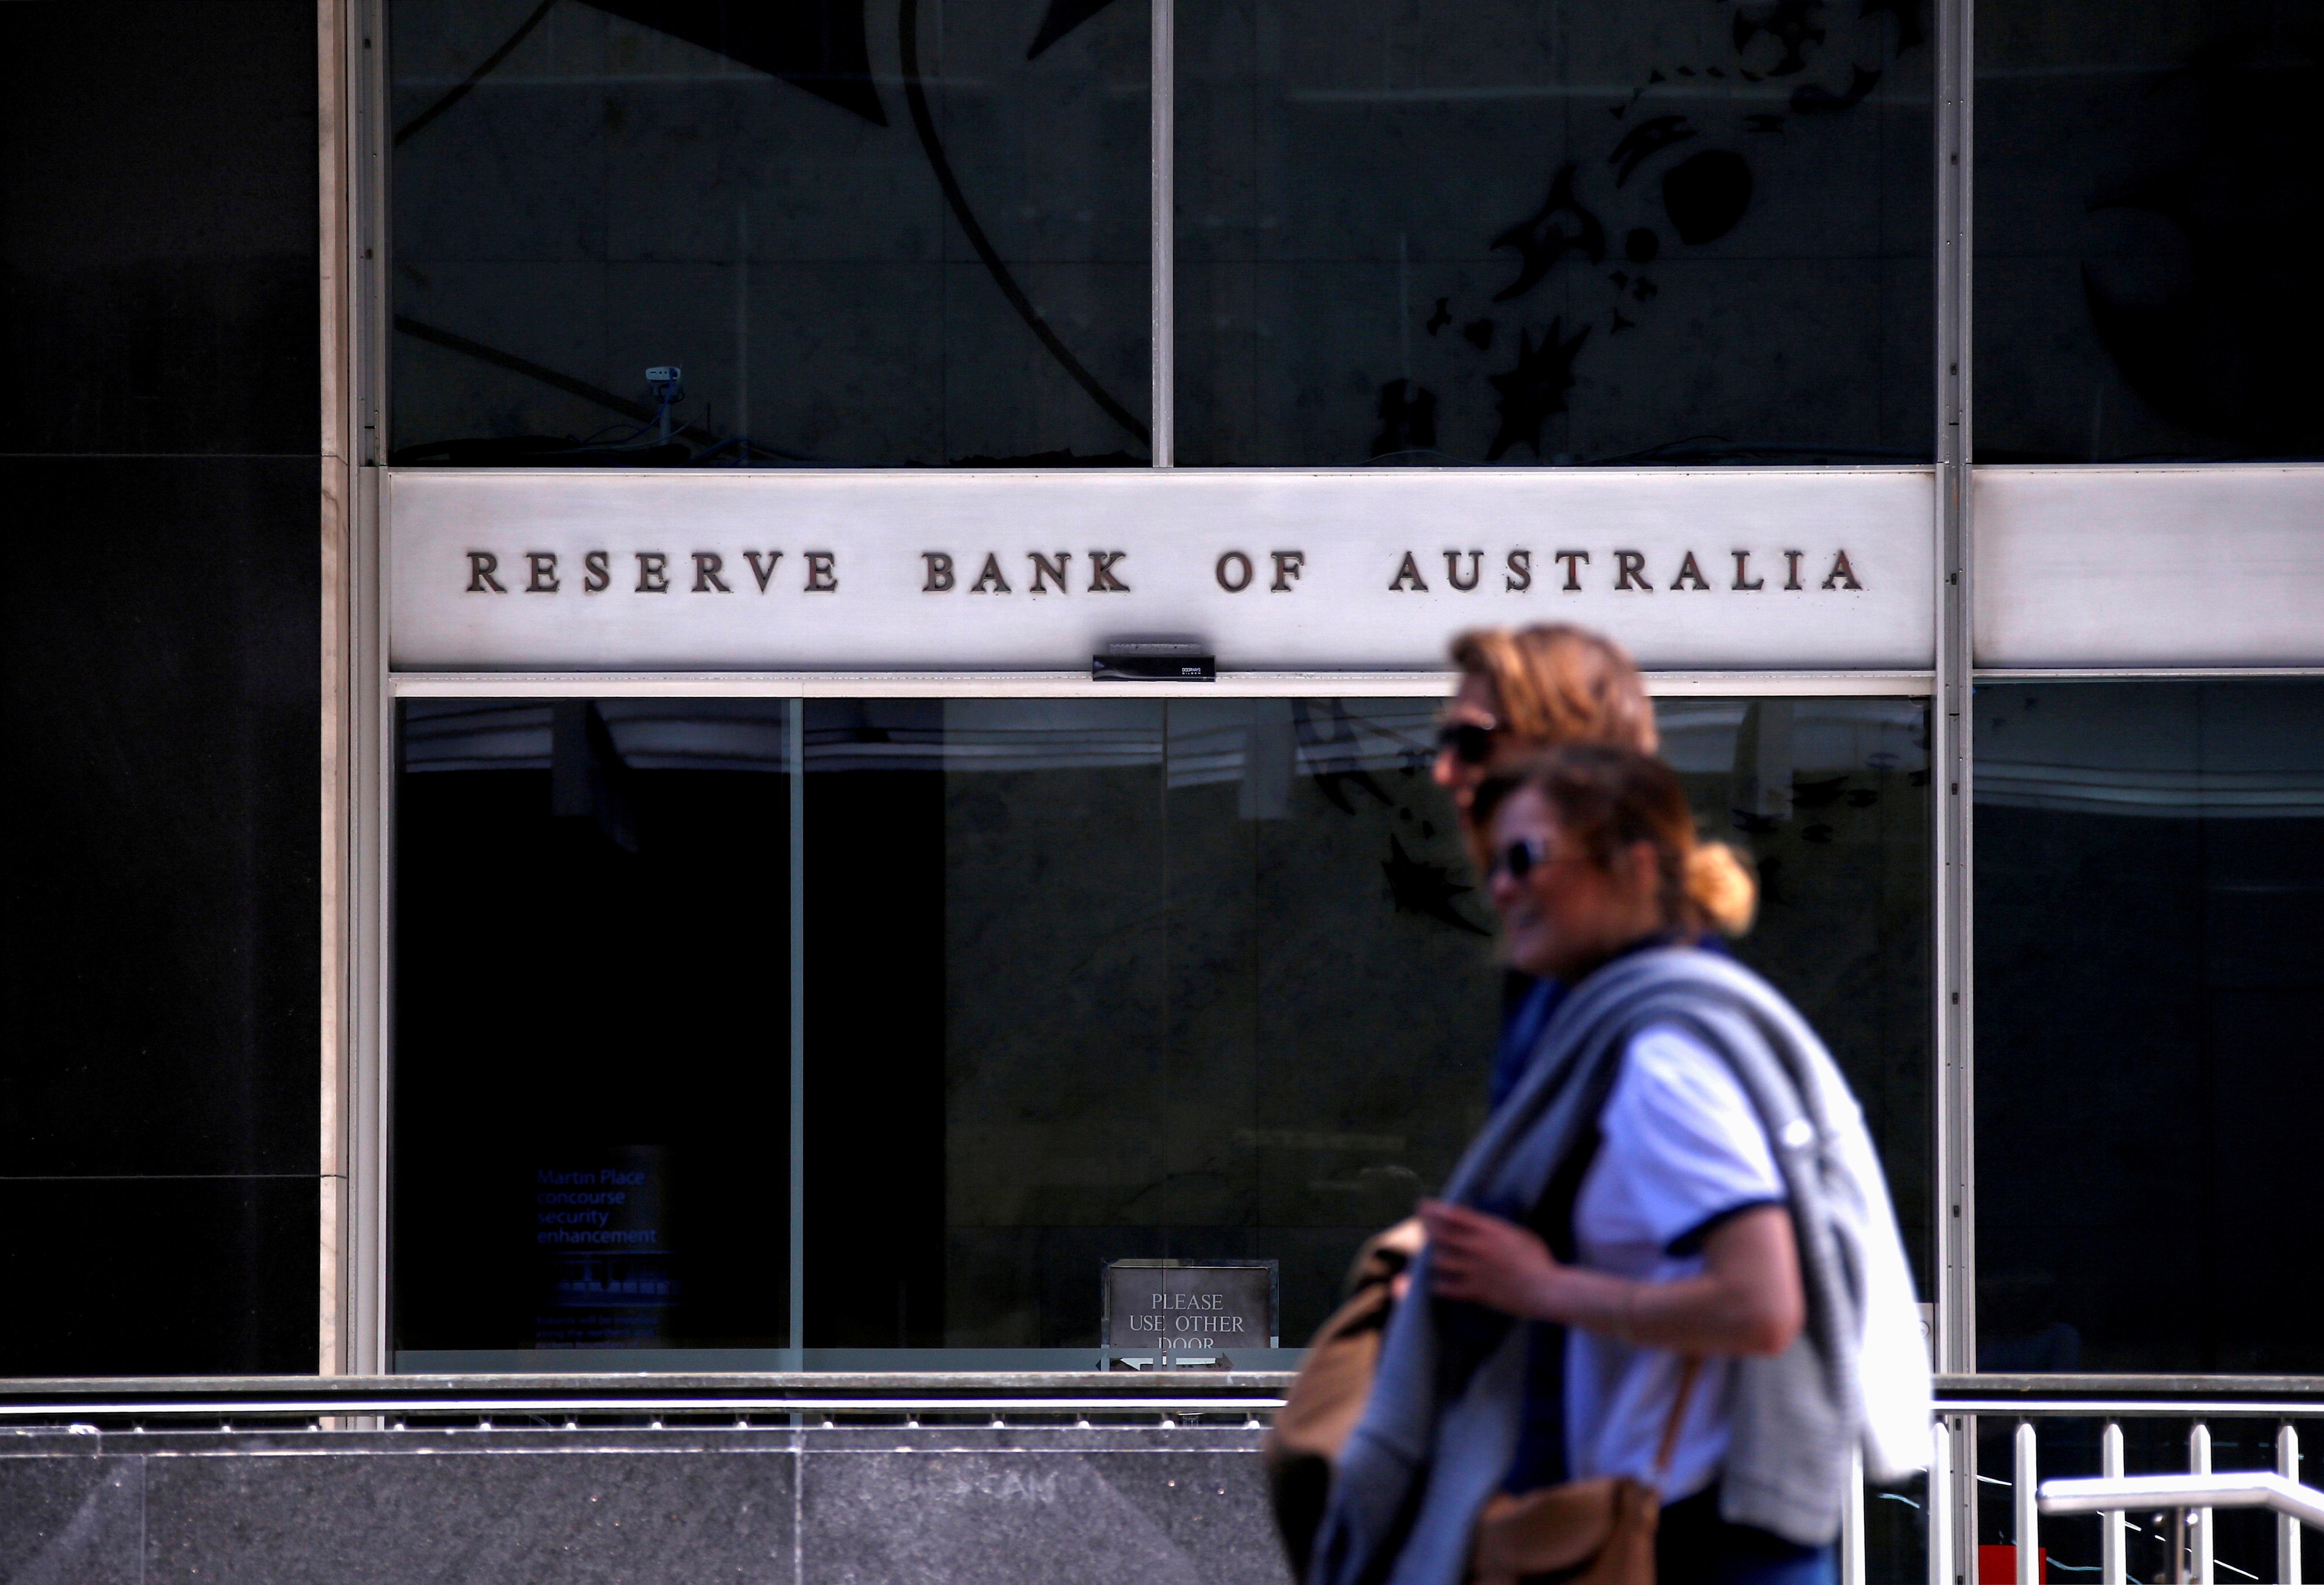 Pedestrians walk past the main entrance to the Reserve Bank of Australia (RBA) head office in central Sydney, Australia, October 3, 2016. Picture taken October 3, 2016. REUTERS/David Gray/File Photo